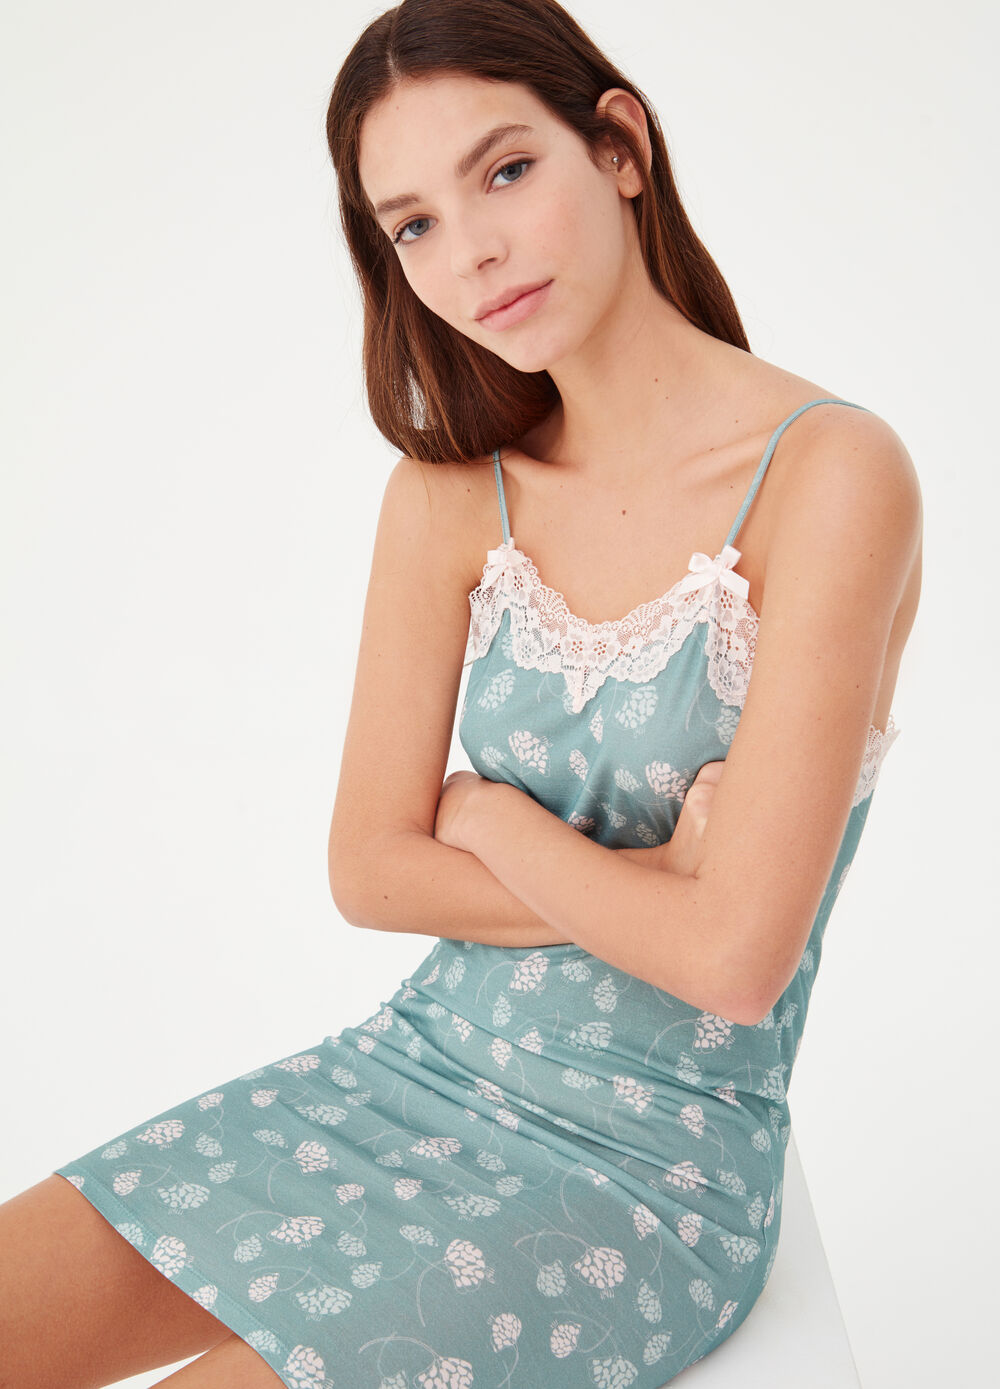 Jersey nightshirt with lace